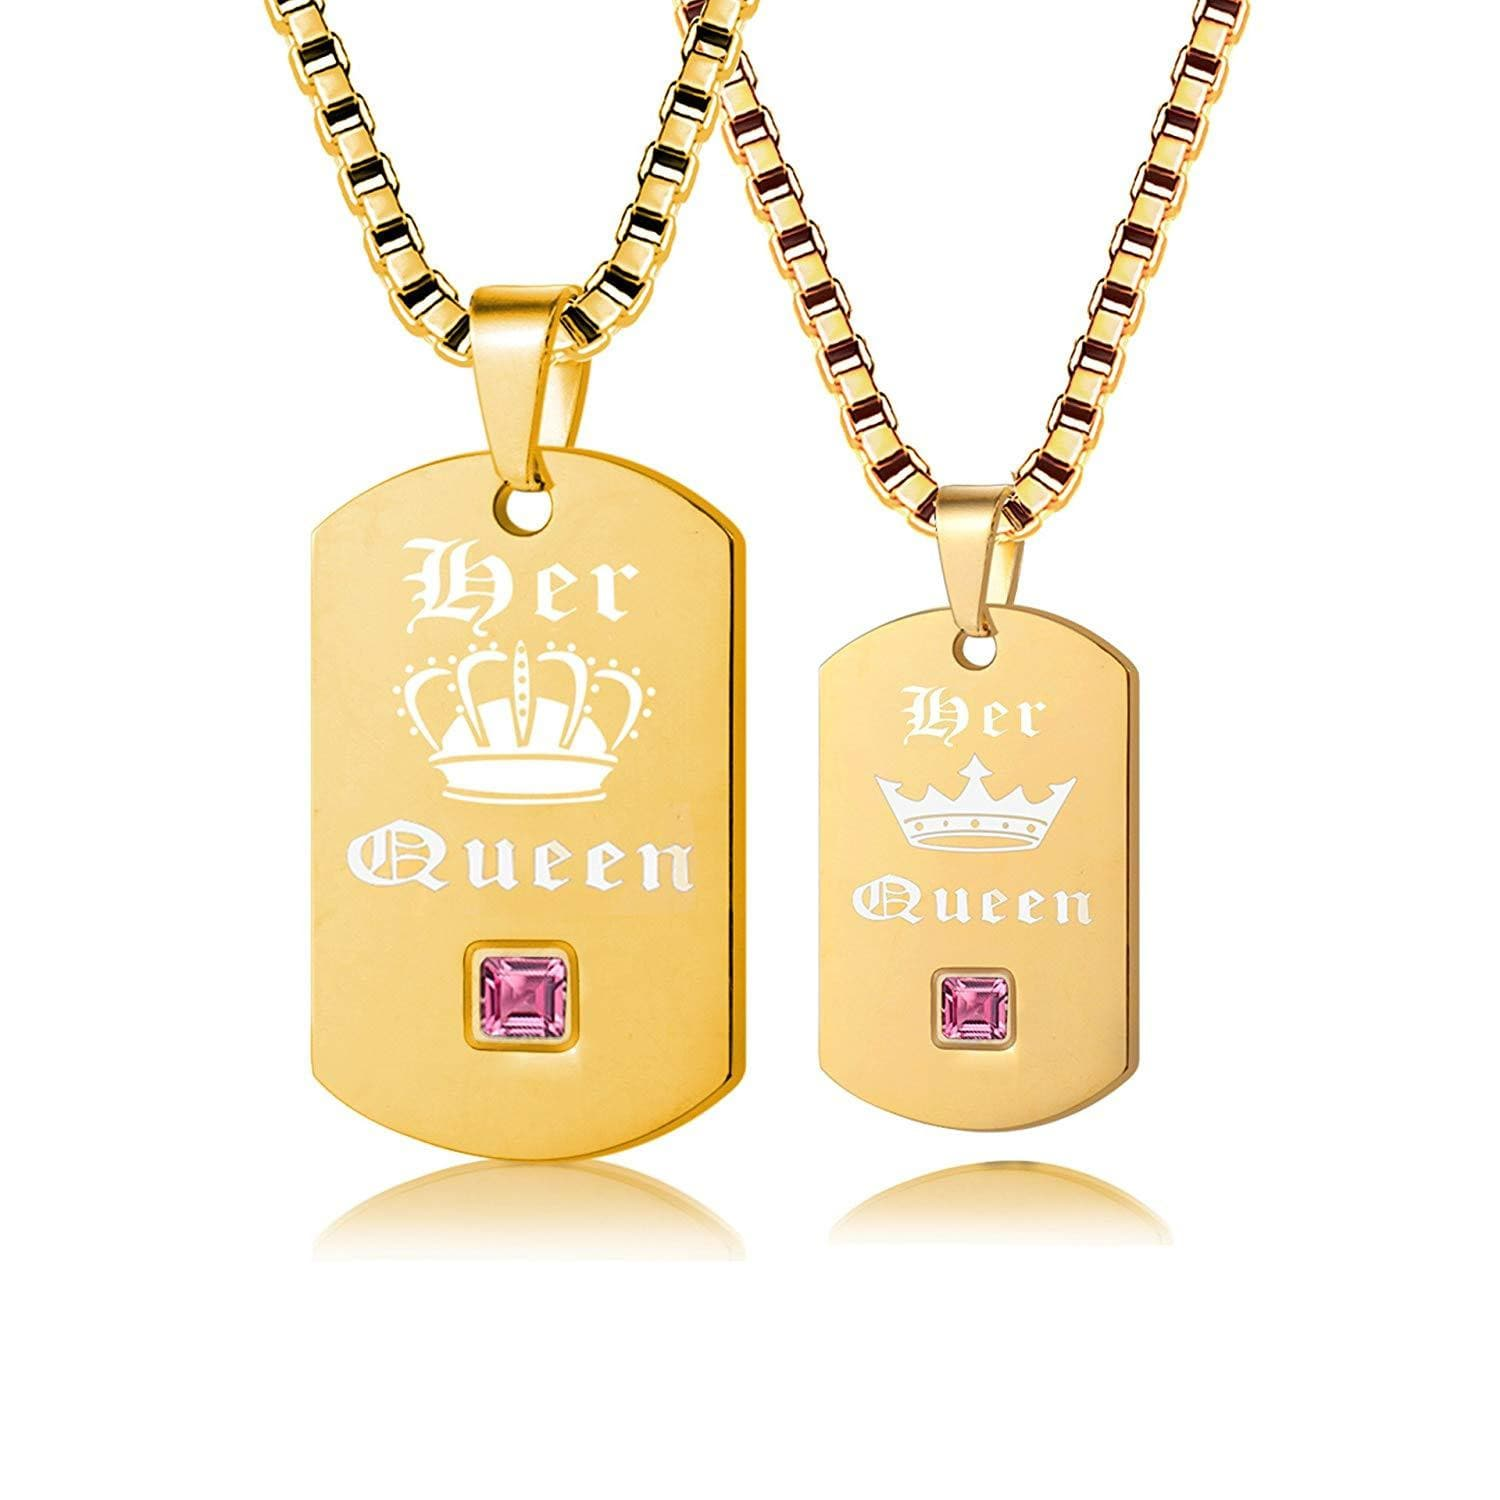 Uloveido 2 pc Gay or Lesbian Pride Dog Tag Titanium Necklaces Set His King Her Queen SN125 (Black, Gold)